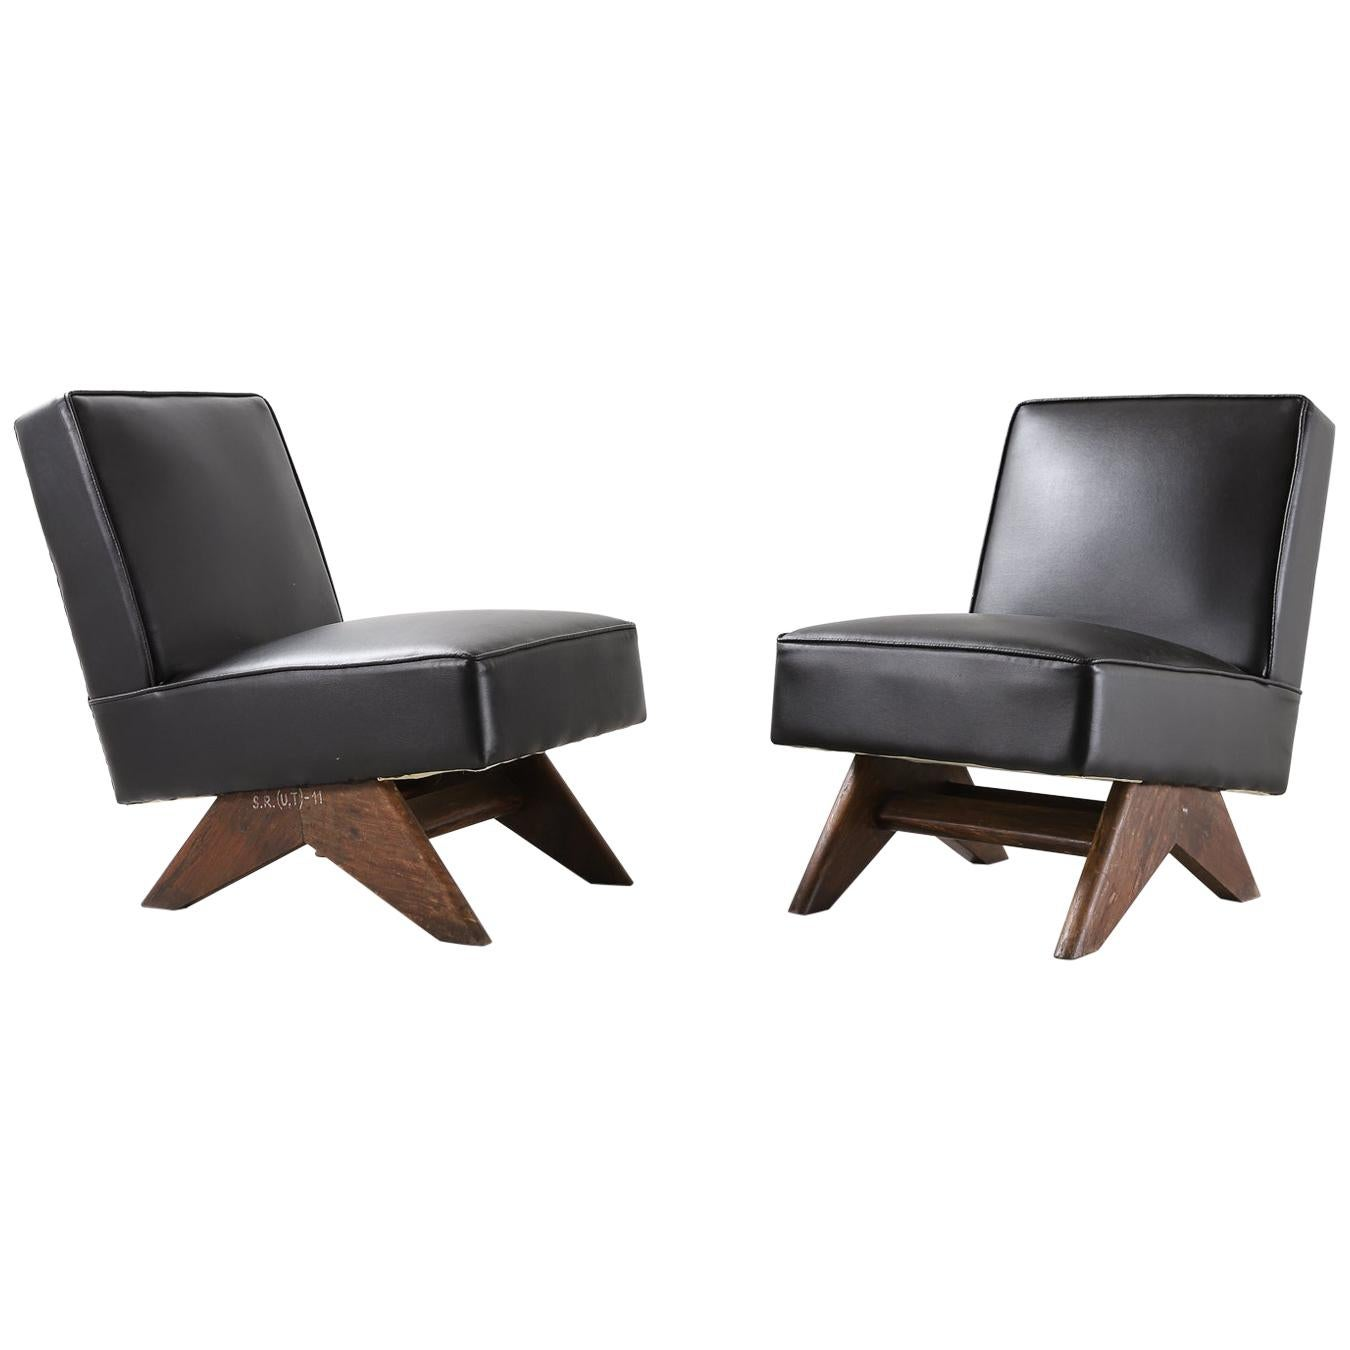 """Pair of Pierre Jeanneret """"Fireside"""" Chair, circa 1955-1956"""